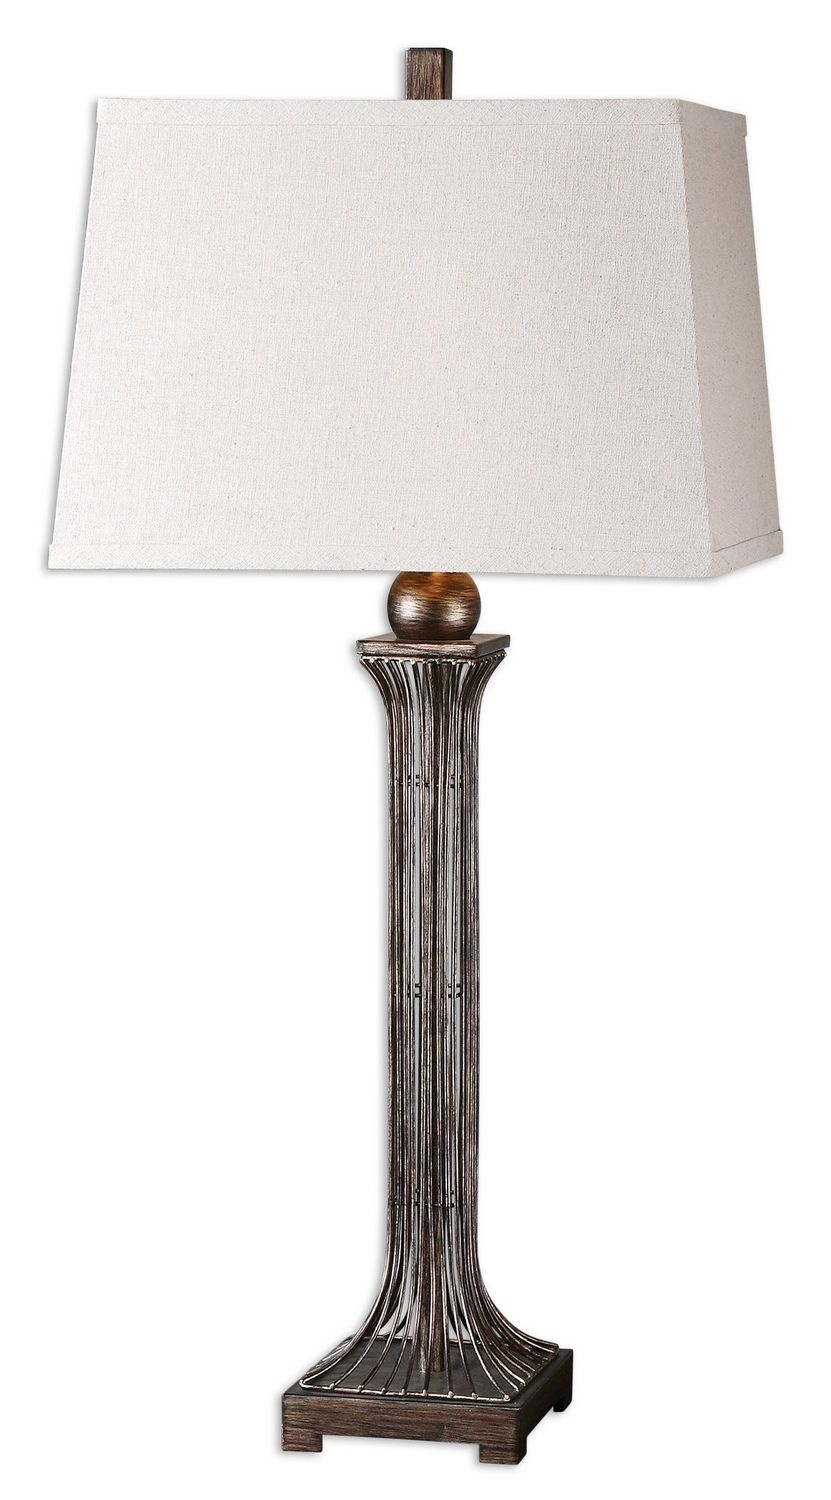 Uttermost Coriano Table Lamp - Set of 2